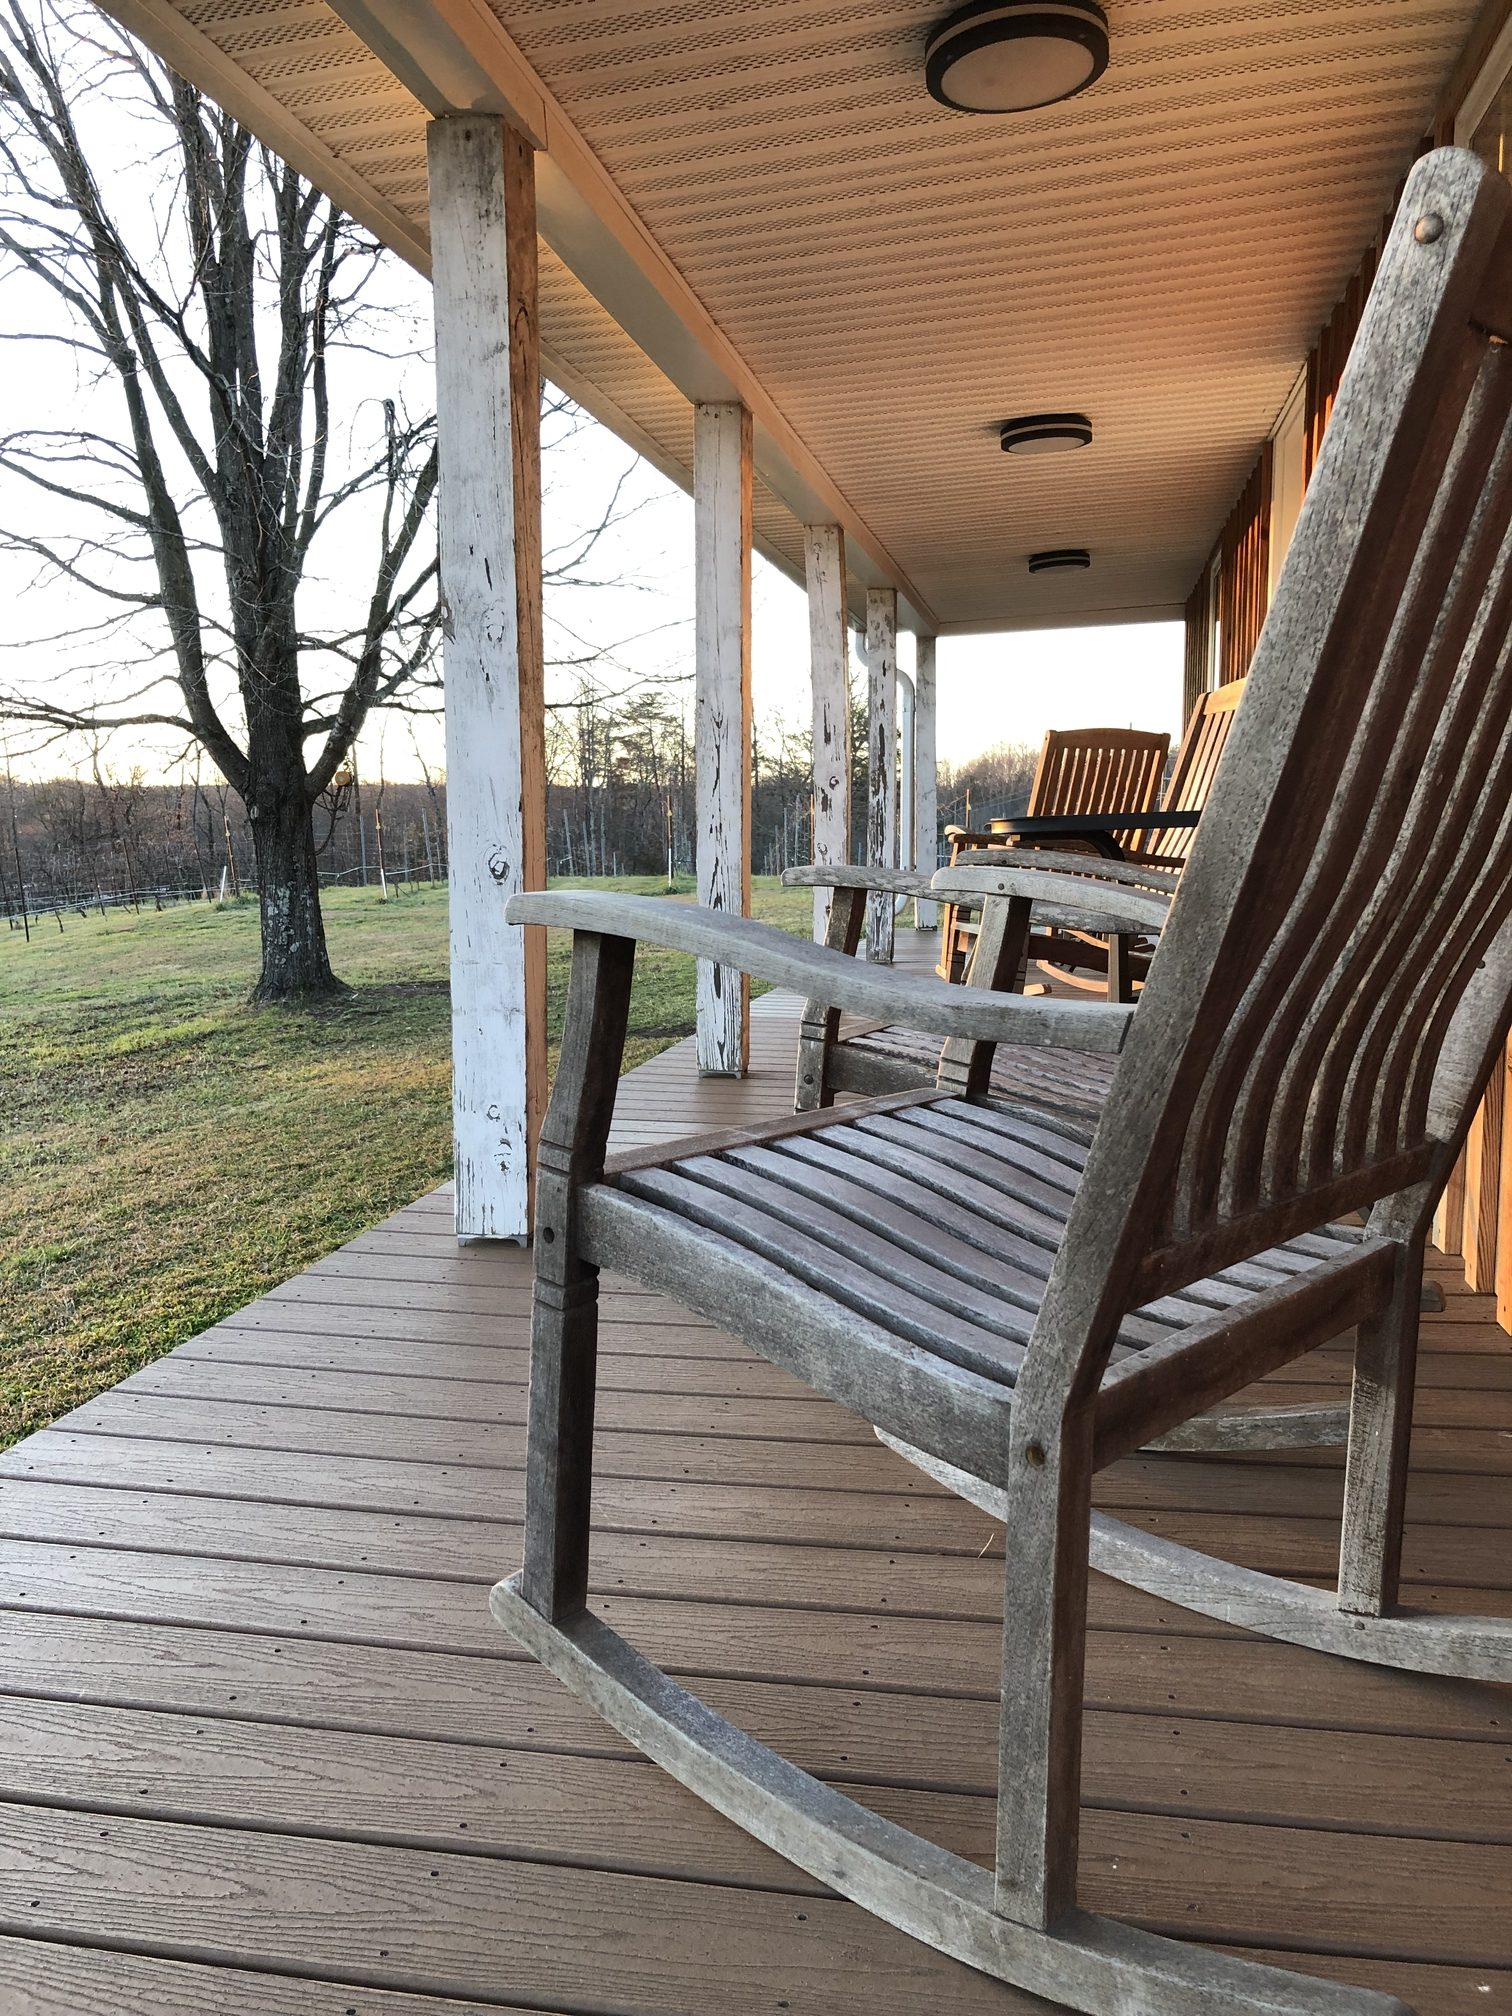 rocking chair on a wooden porch